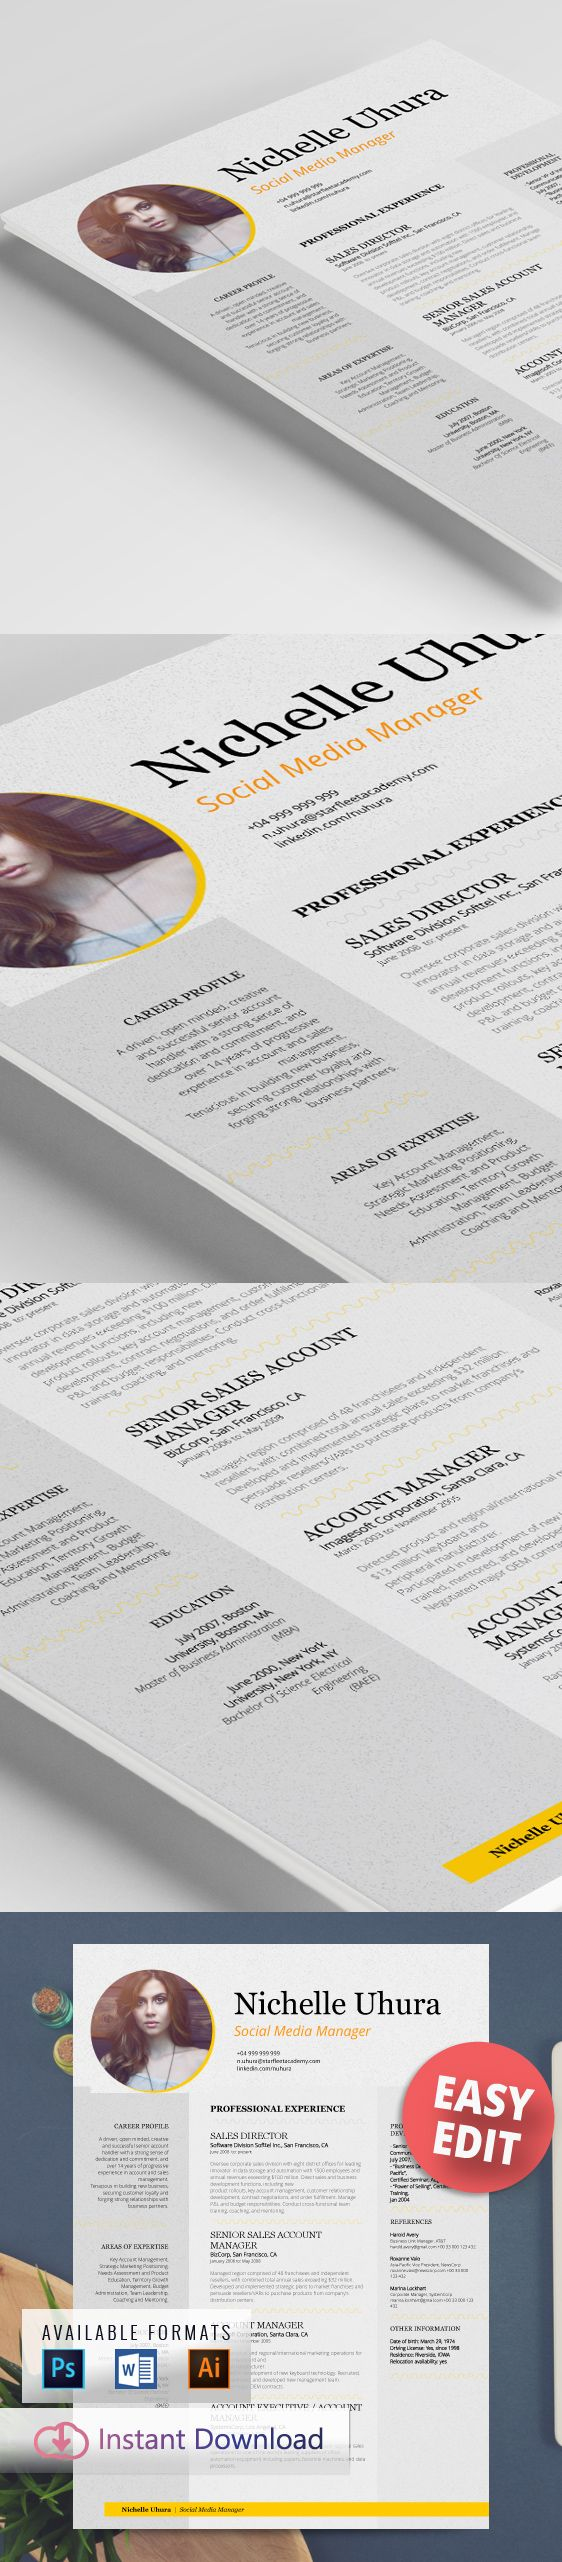 A jazzed up resume design I actually